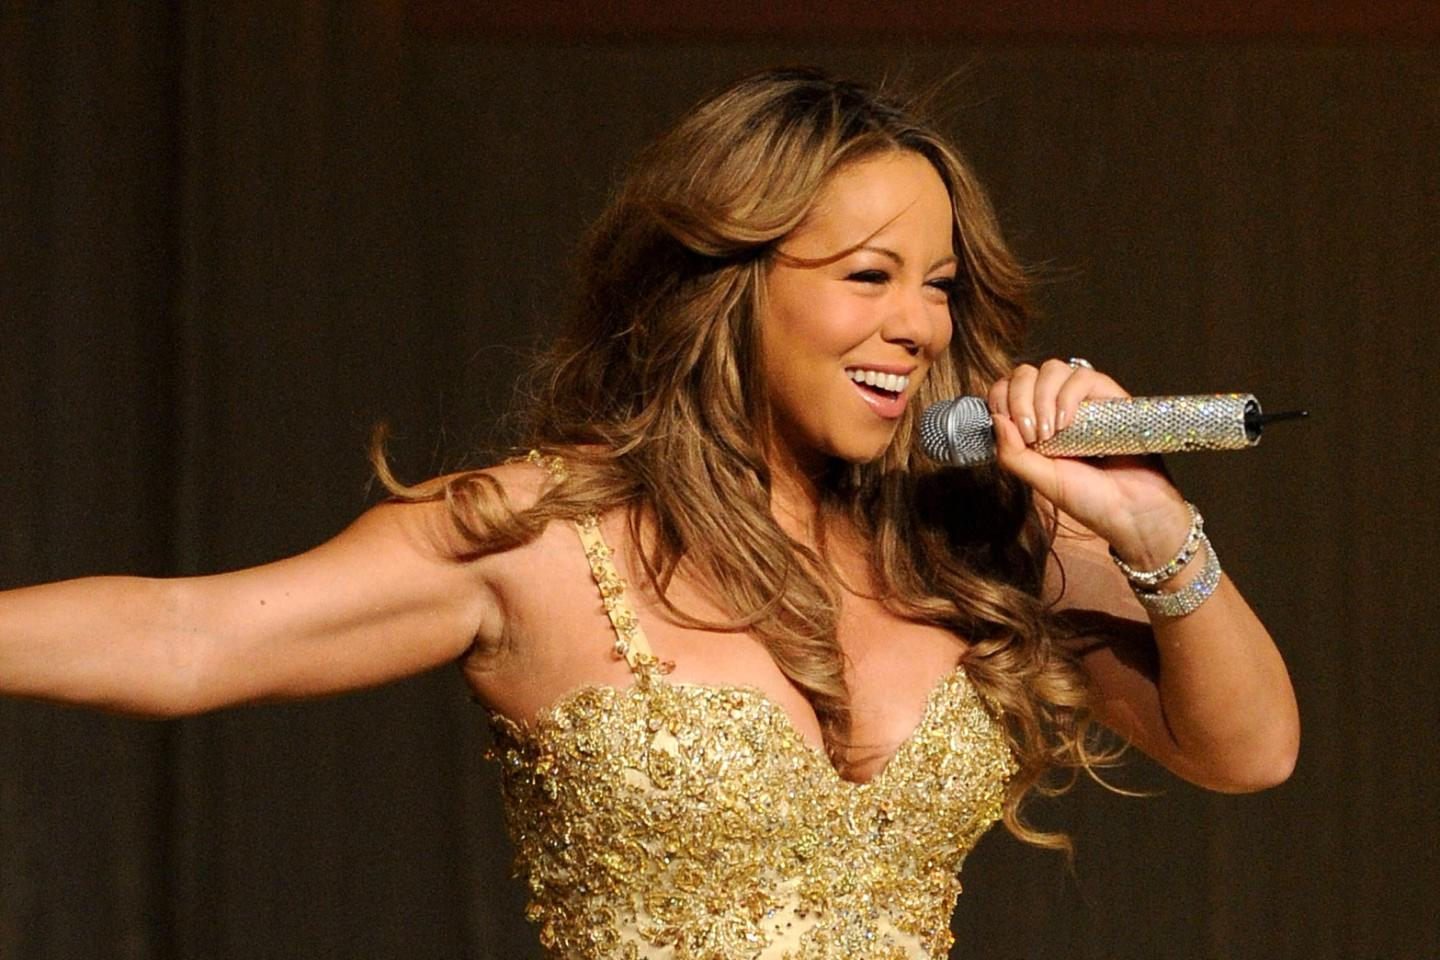 Mariah Carey Tickets | Mariah Carey Tour 2020 and Concert Tickets